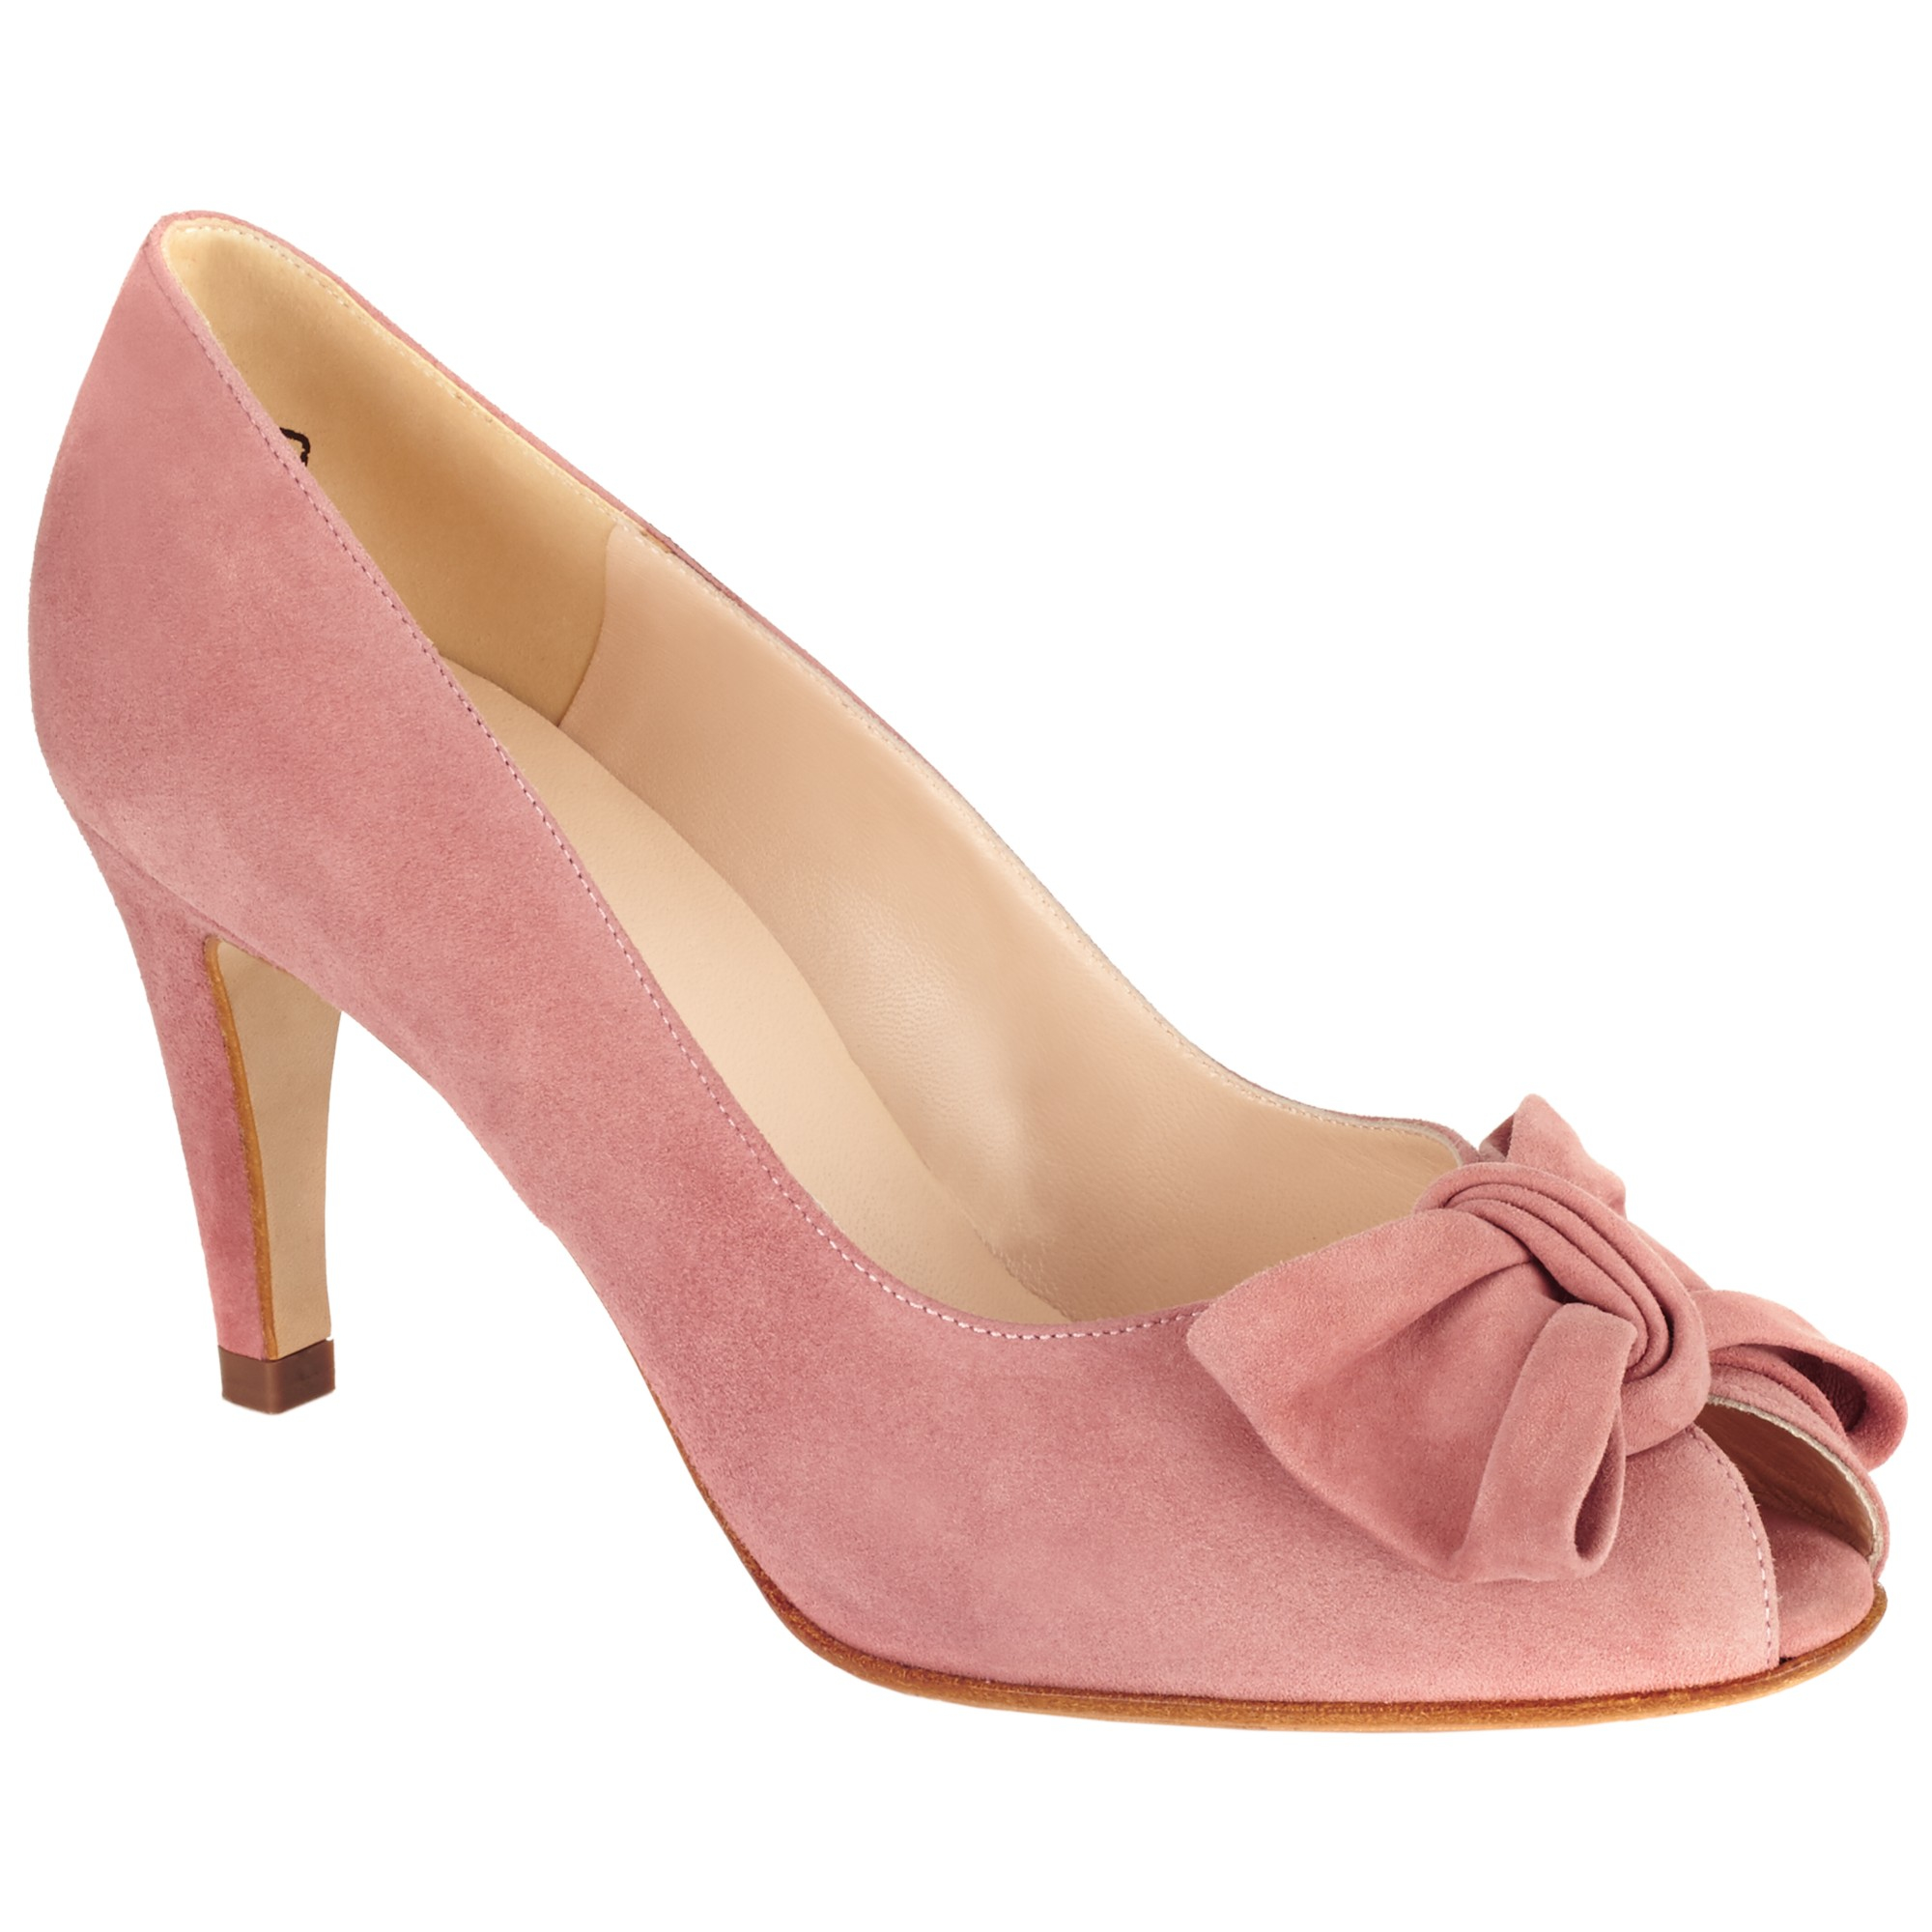 d8a4757ca9a Peter Kaiser Samos Bow Detail Open Toe Courts in Pink - Lyst